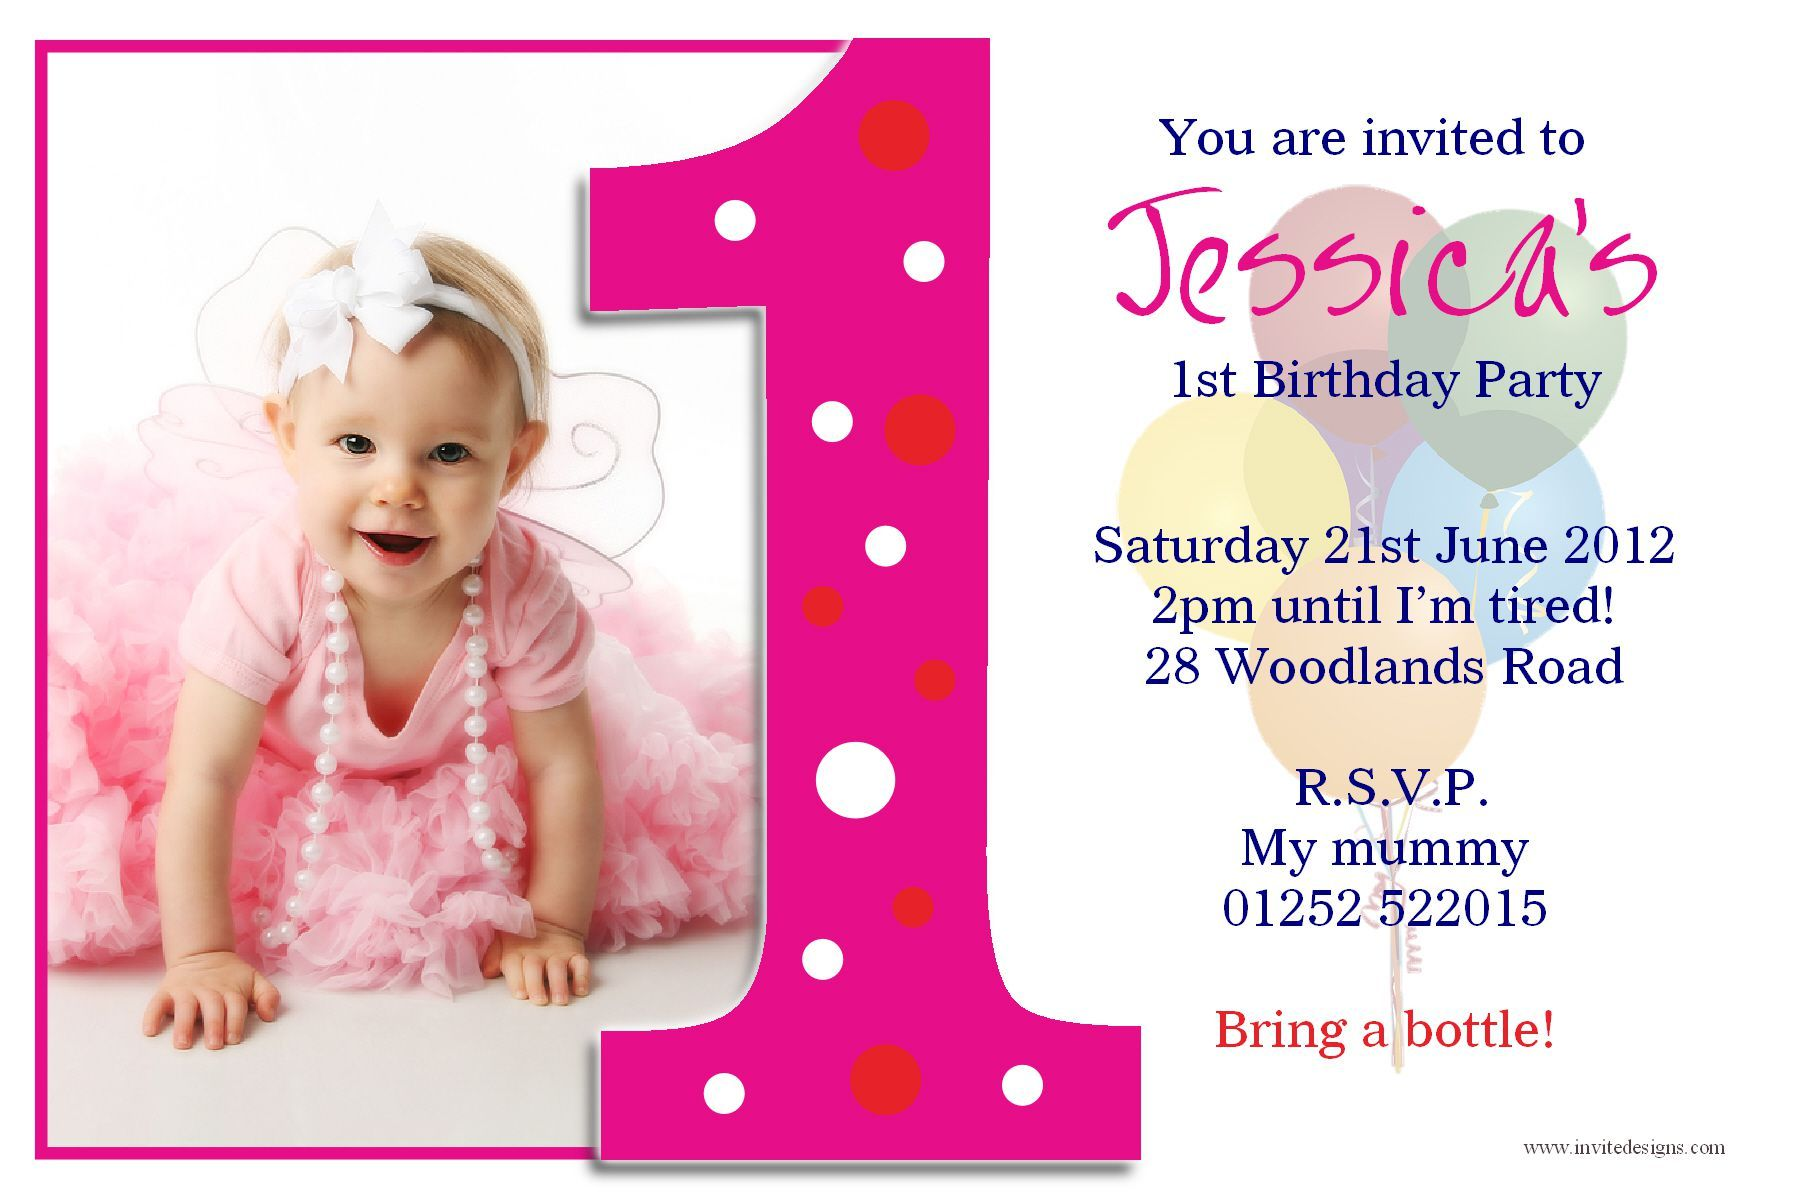 birthday party First birthday invitations Card